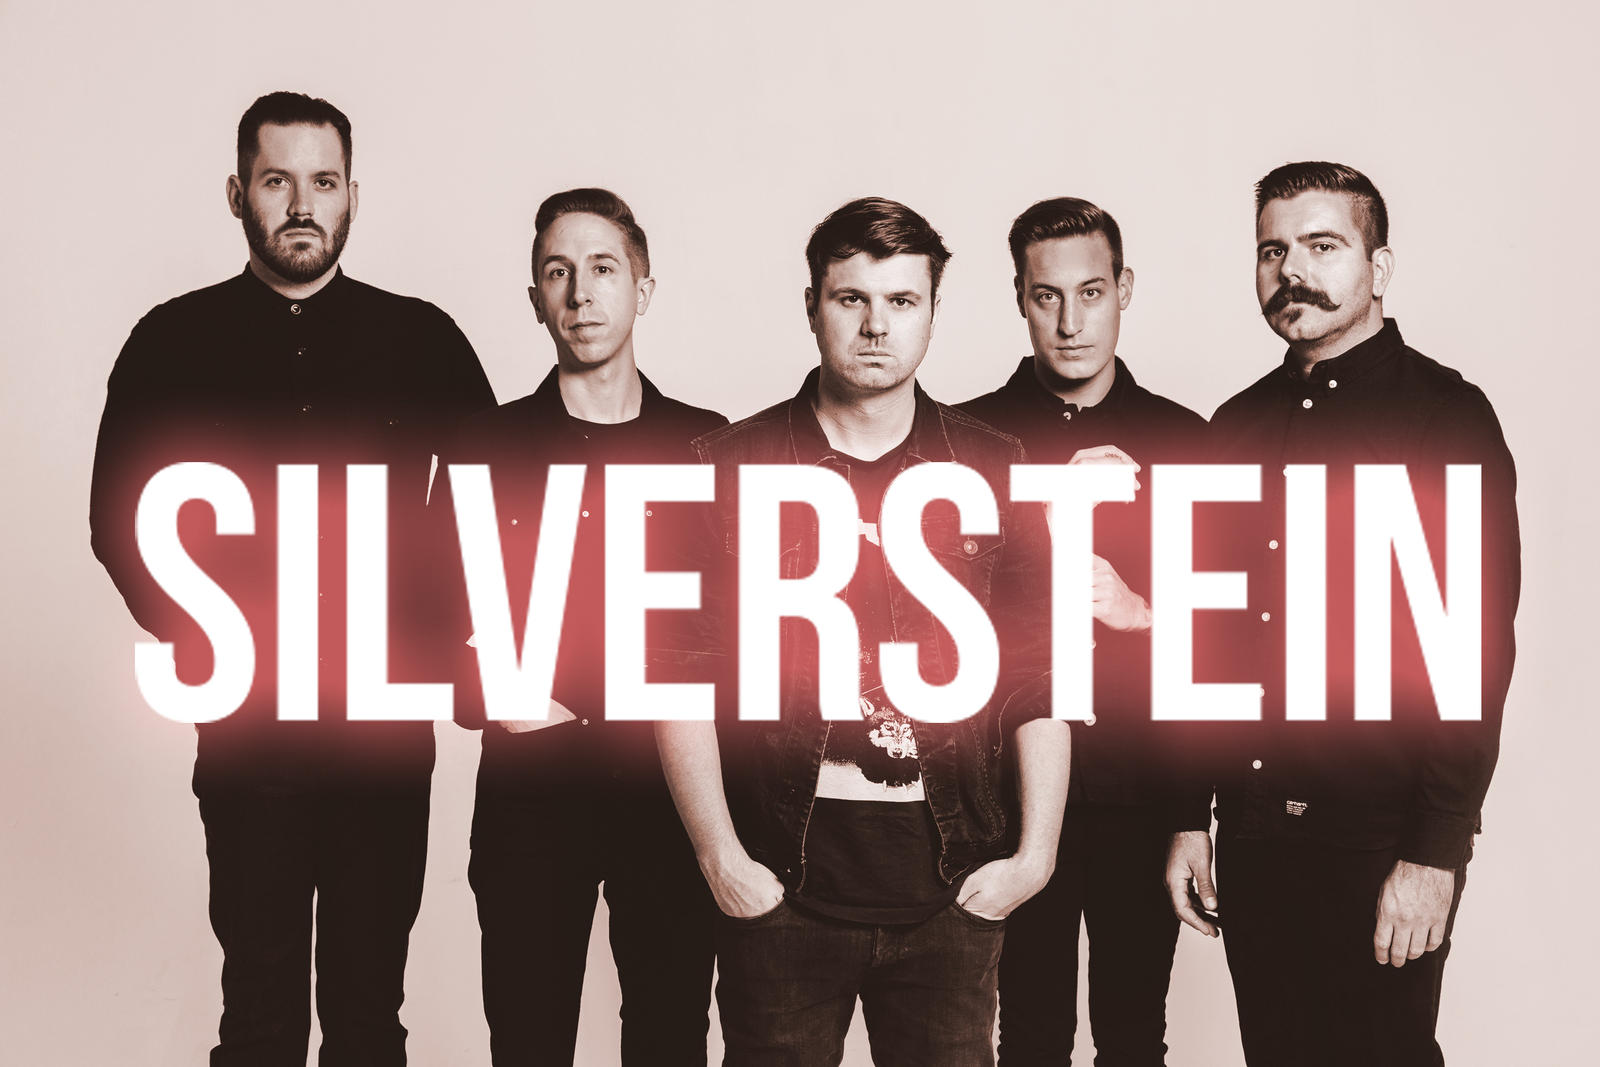 Silverstein Wallpaper Hd By Xkillerben5798x On Deviantart